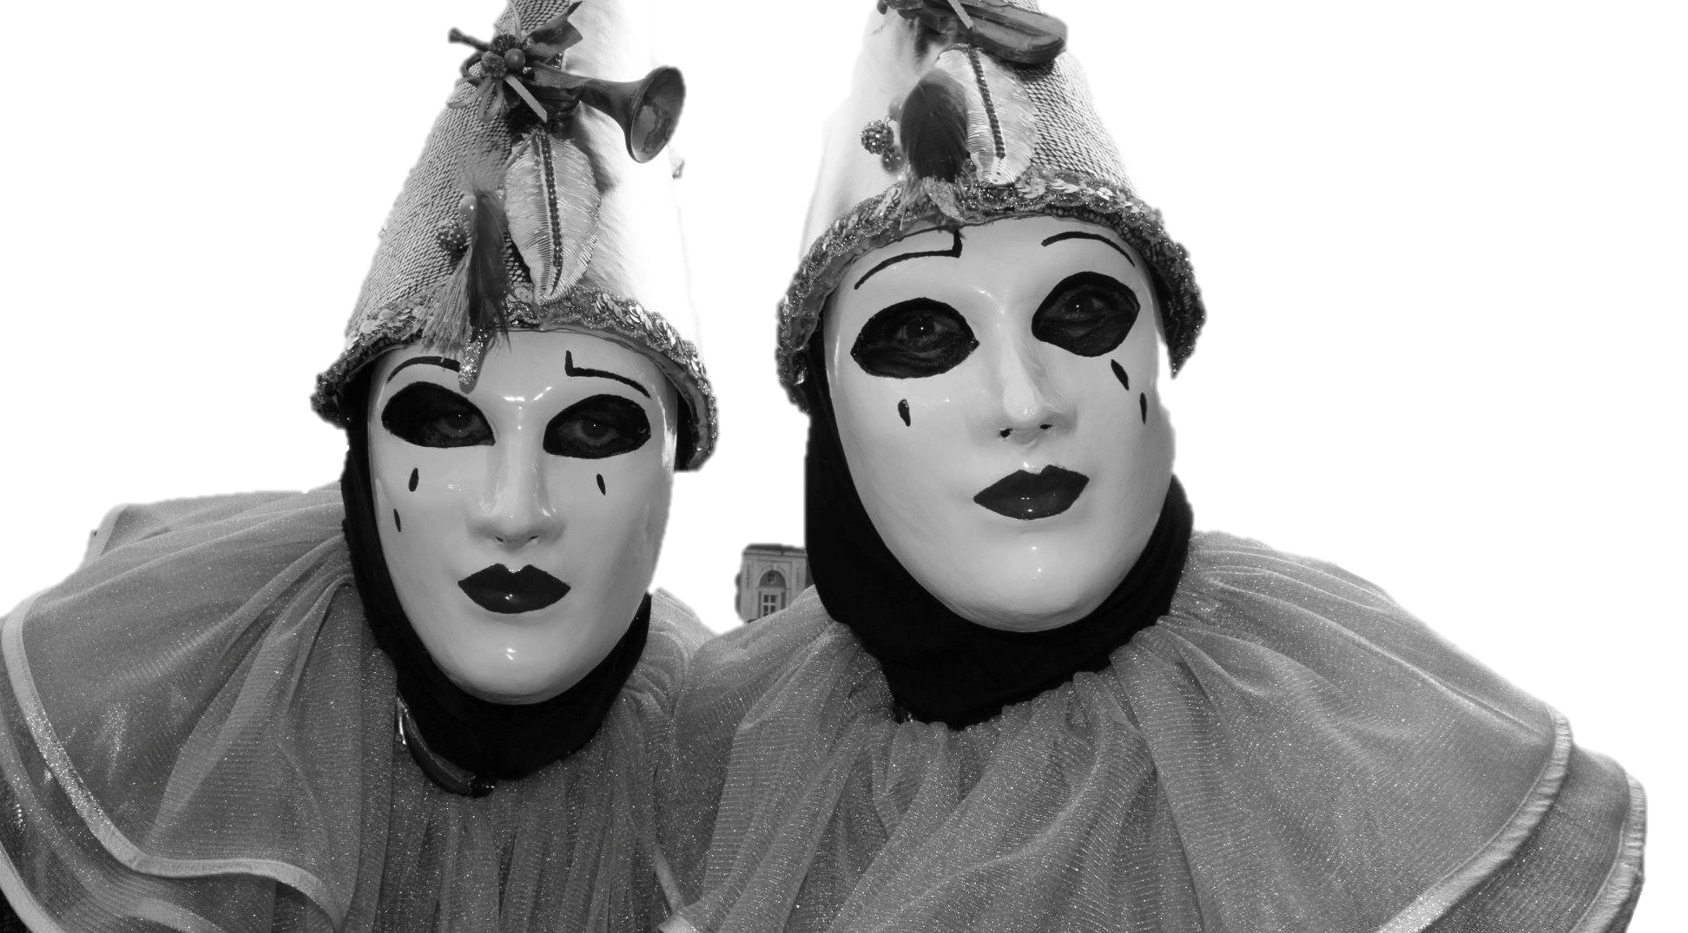 Black & White clowns